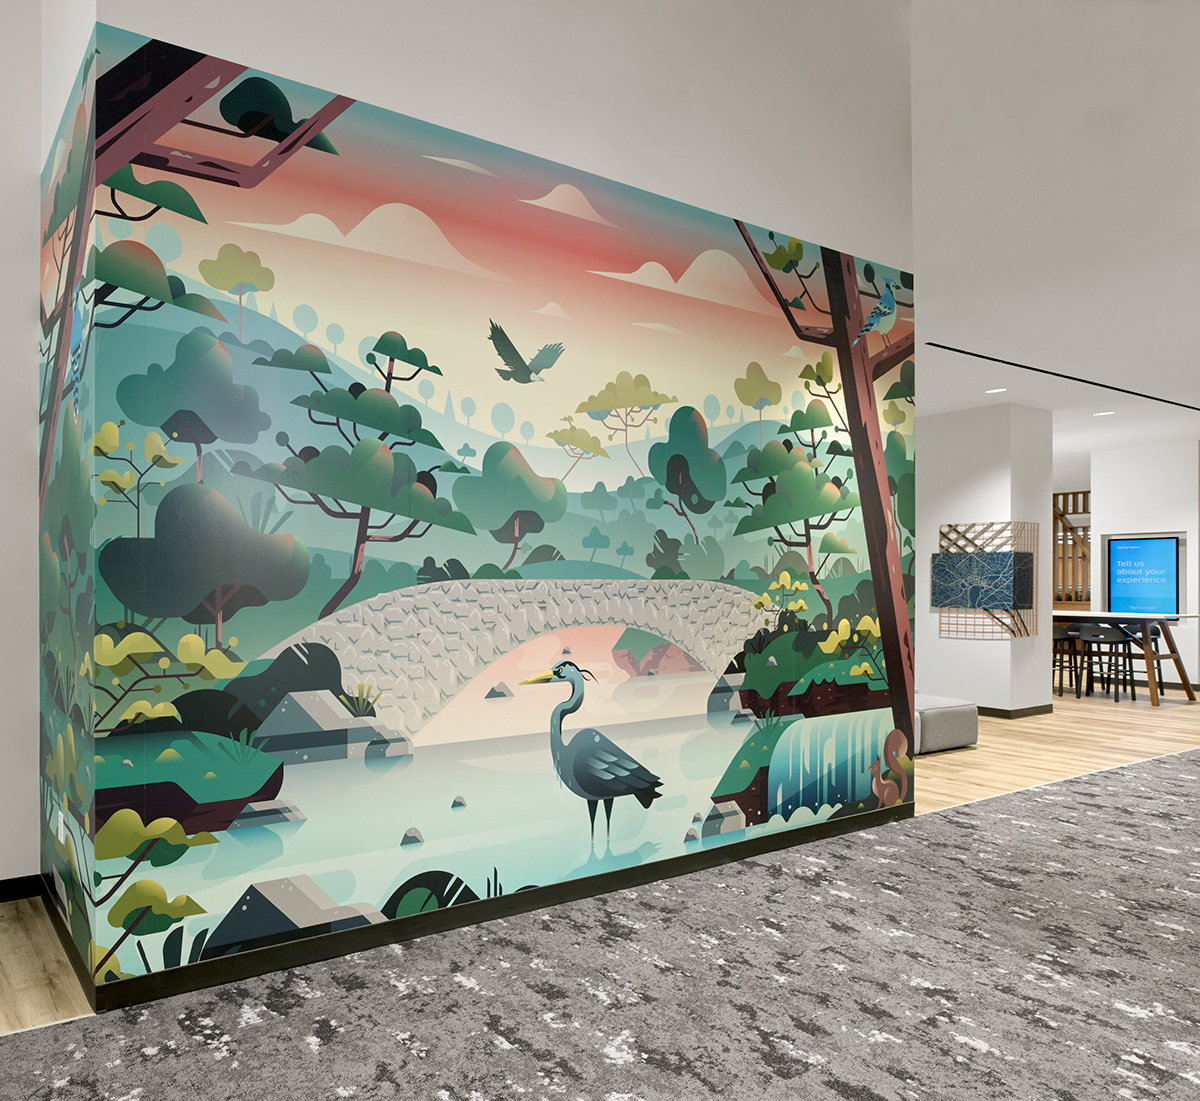 Uber Greenlight Hubs Childrens' Murals on Pantone Canvas Gallery